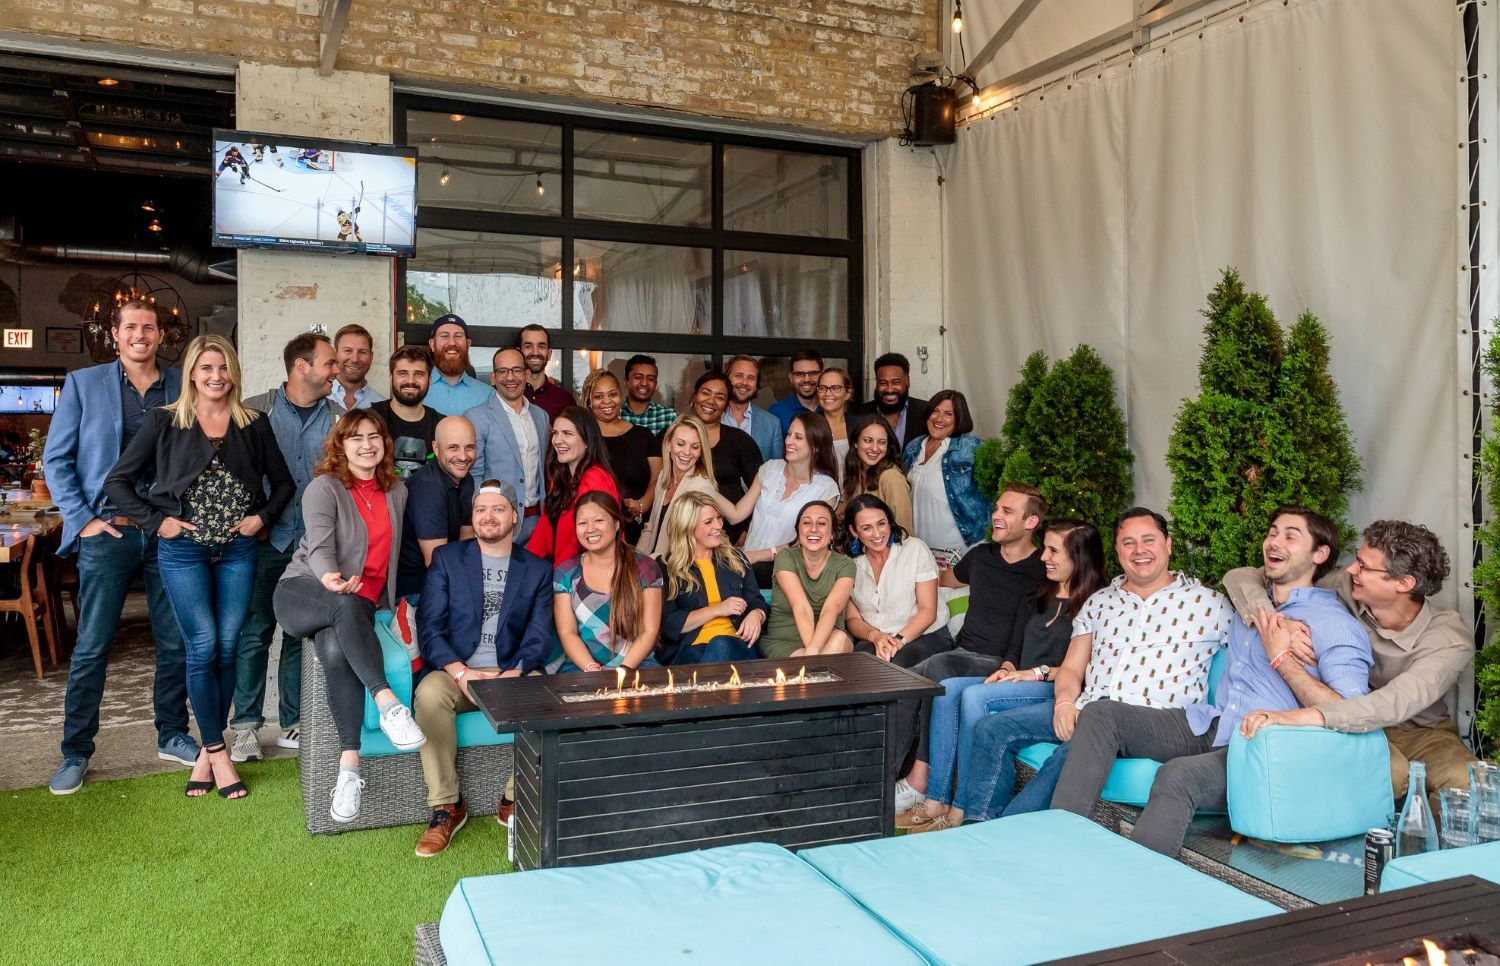 HealthJoy staff celebrate and collaborate